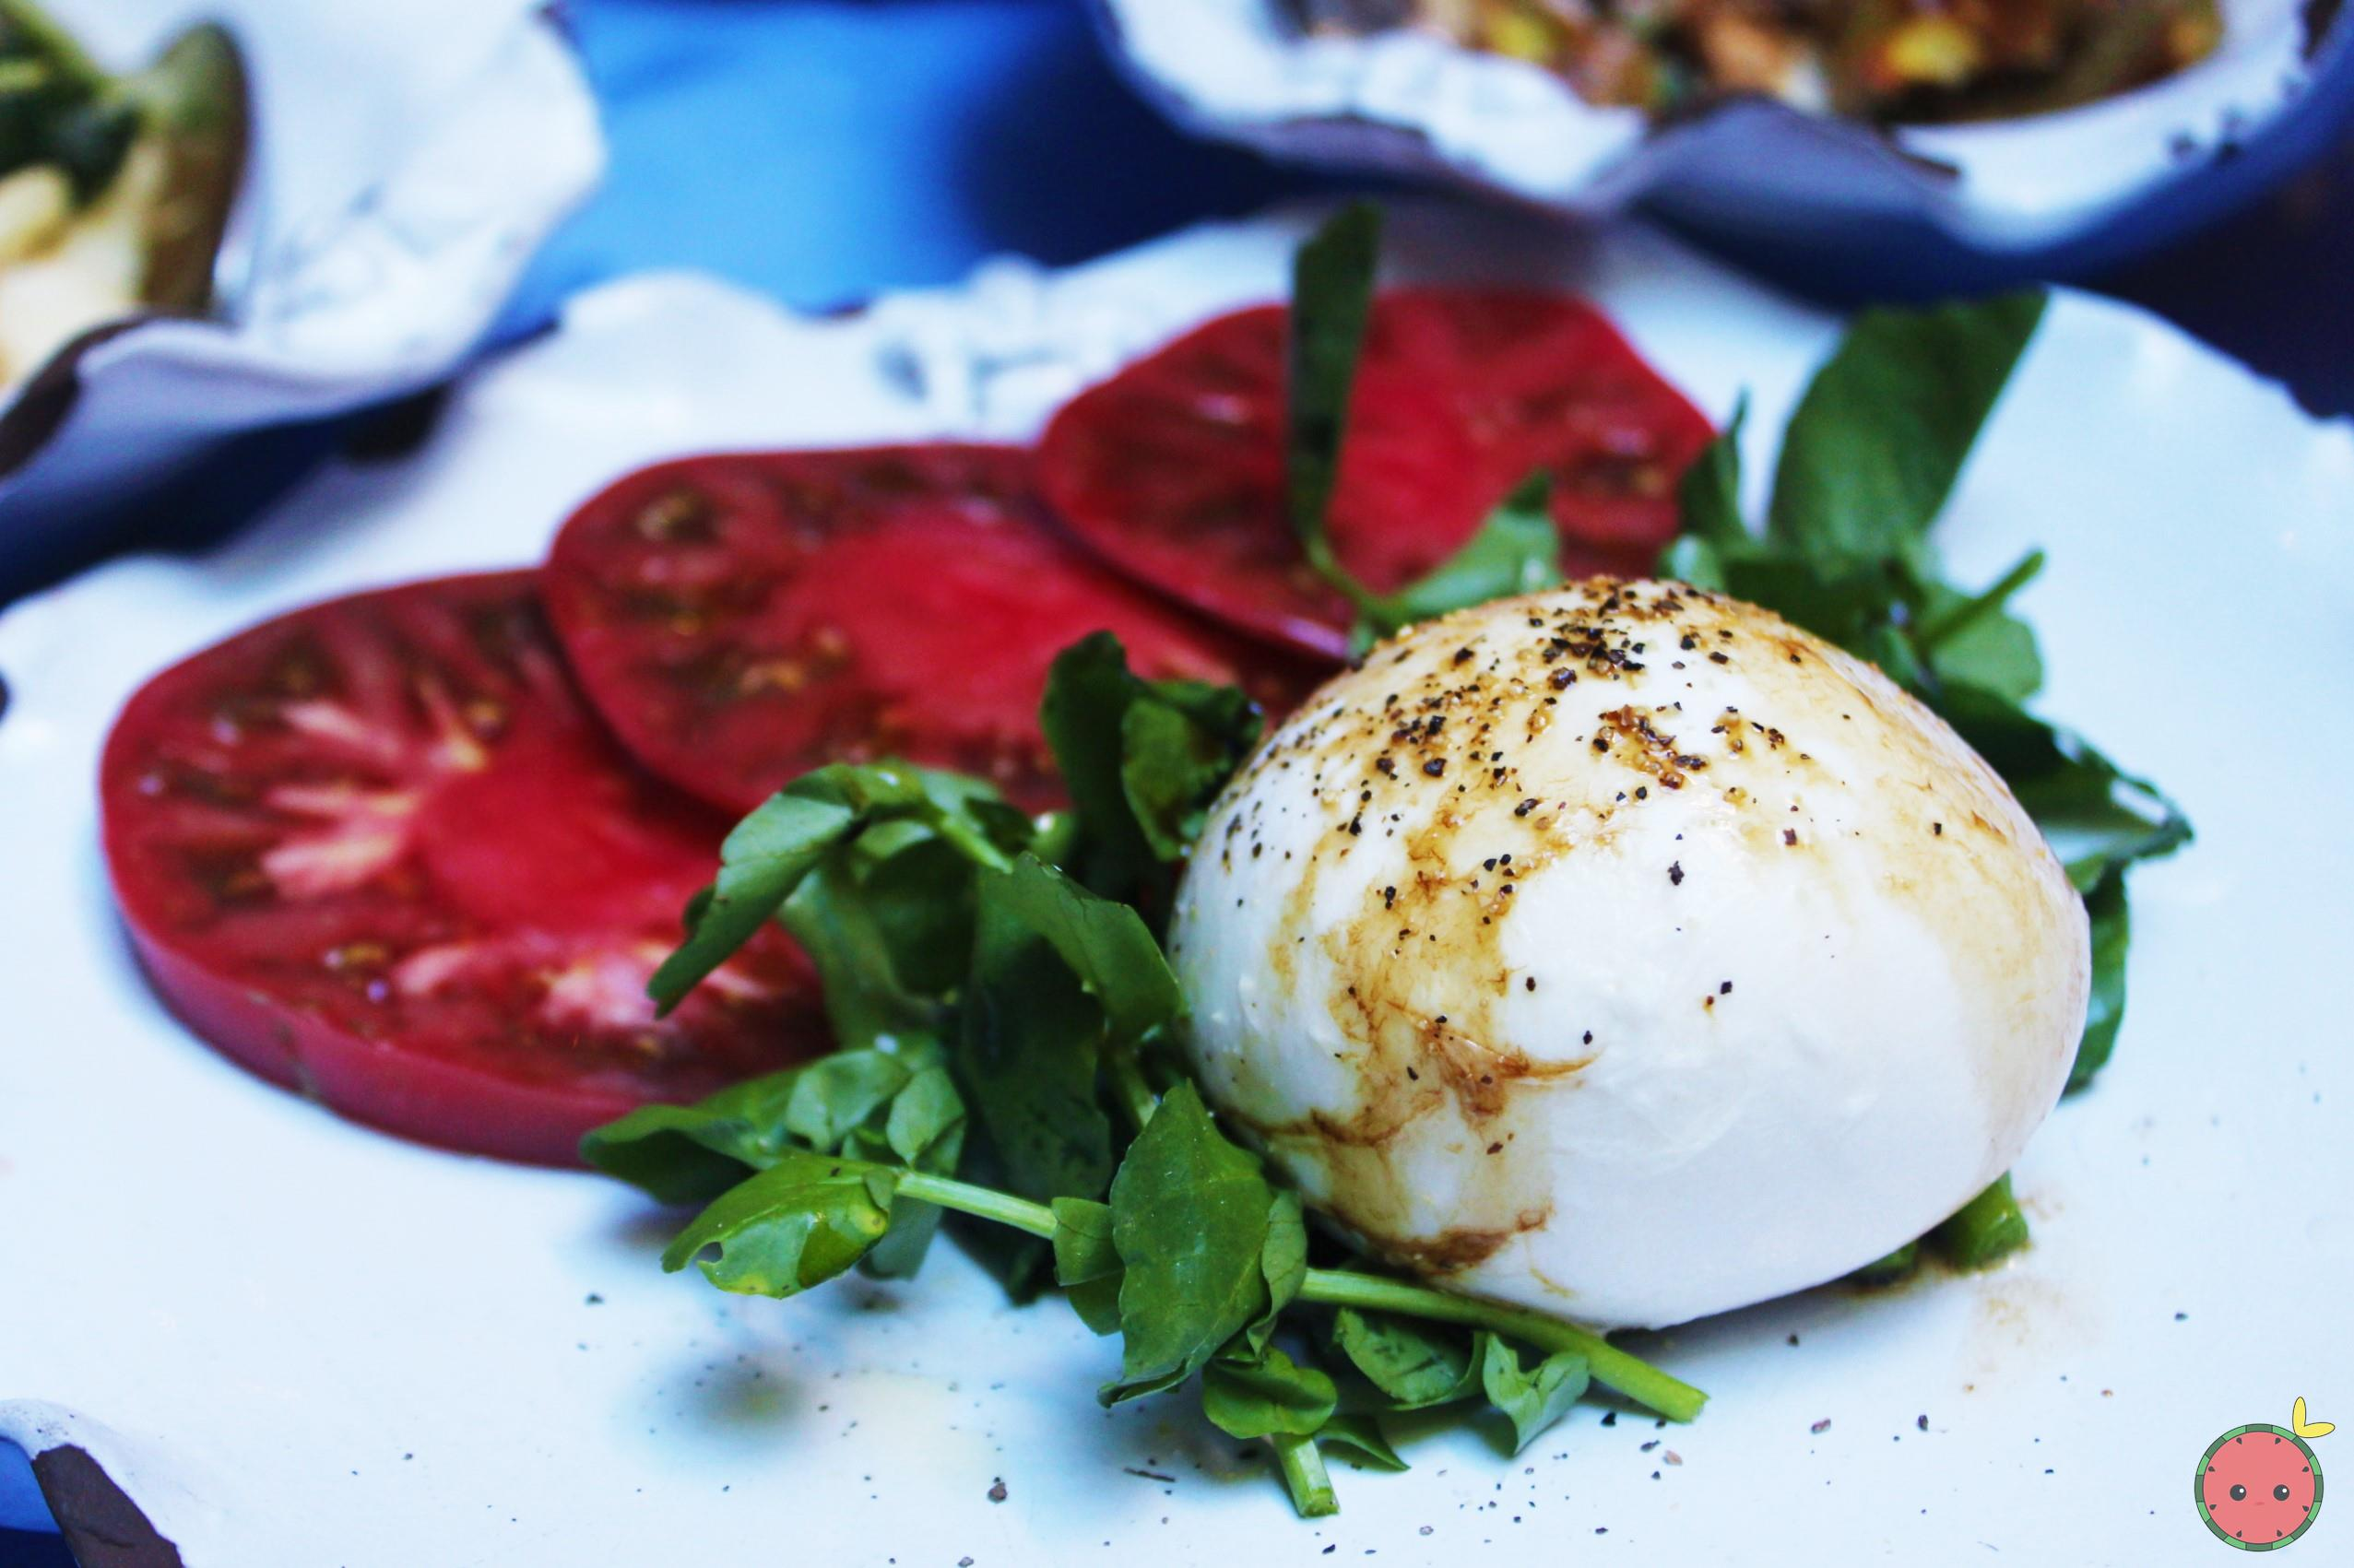 Burrata with tomato and basil